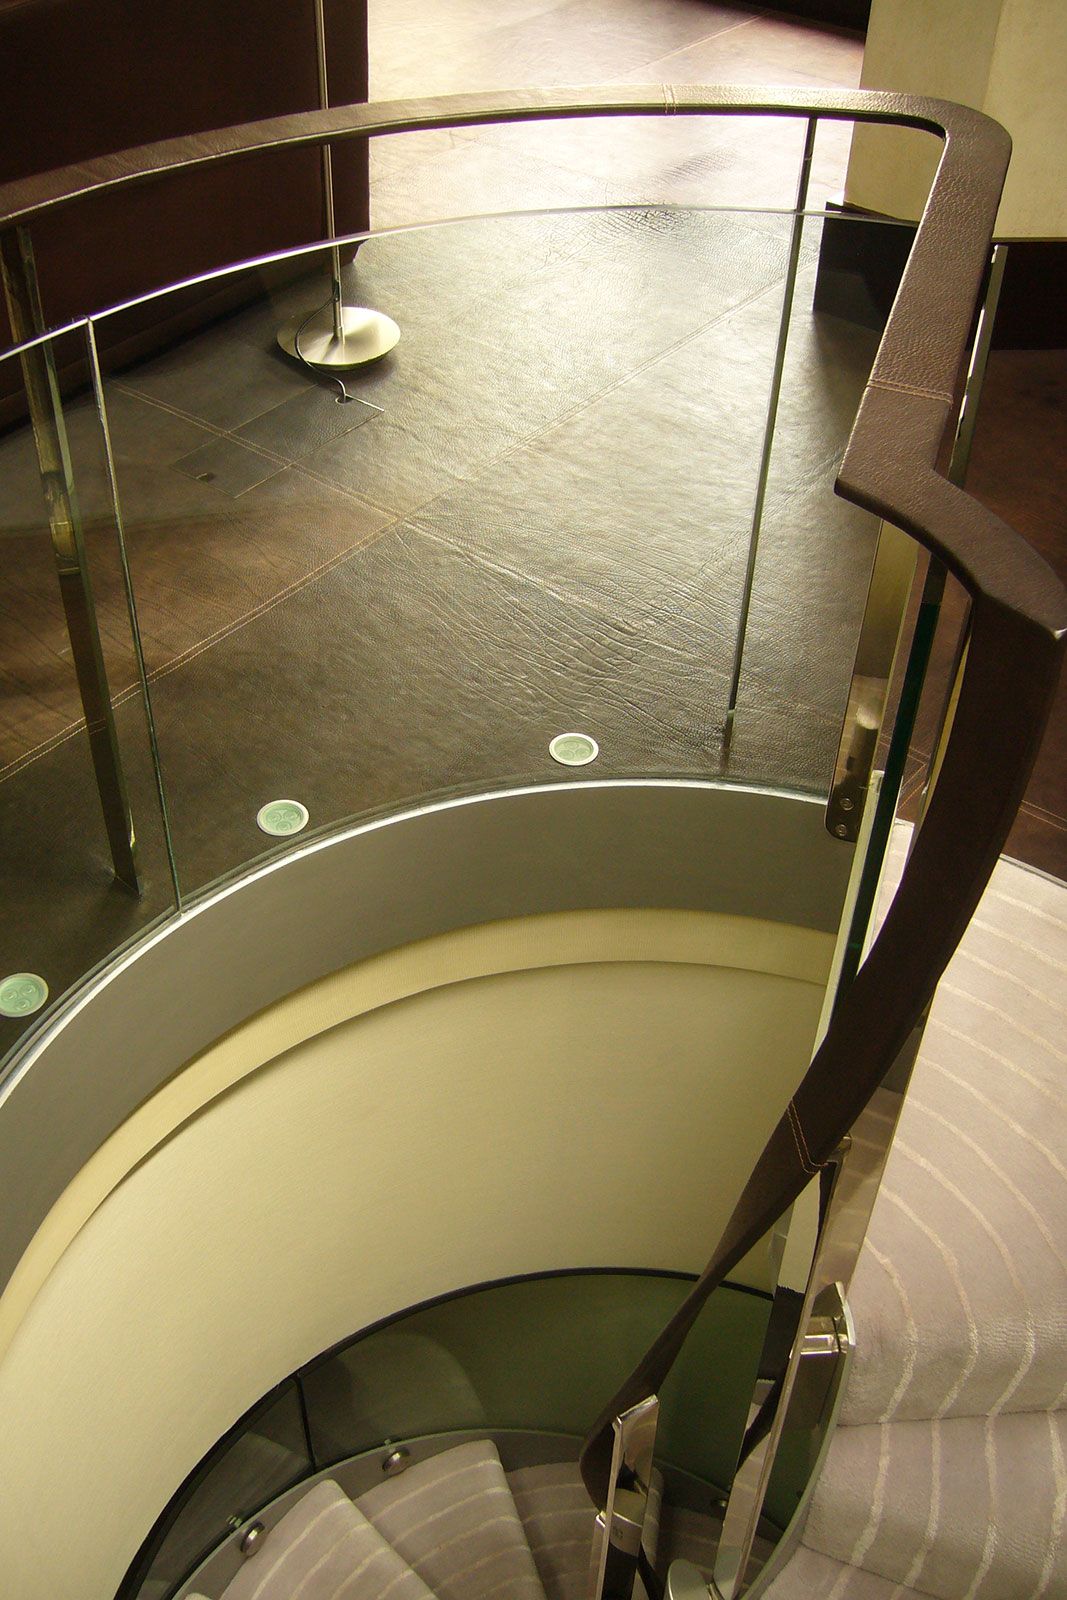 Curved Glass Balustrades with Leather Handrail